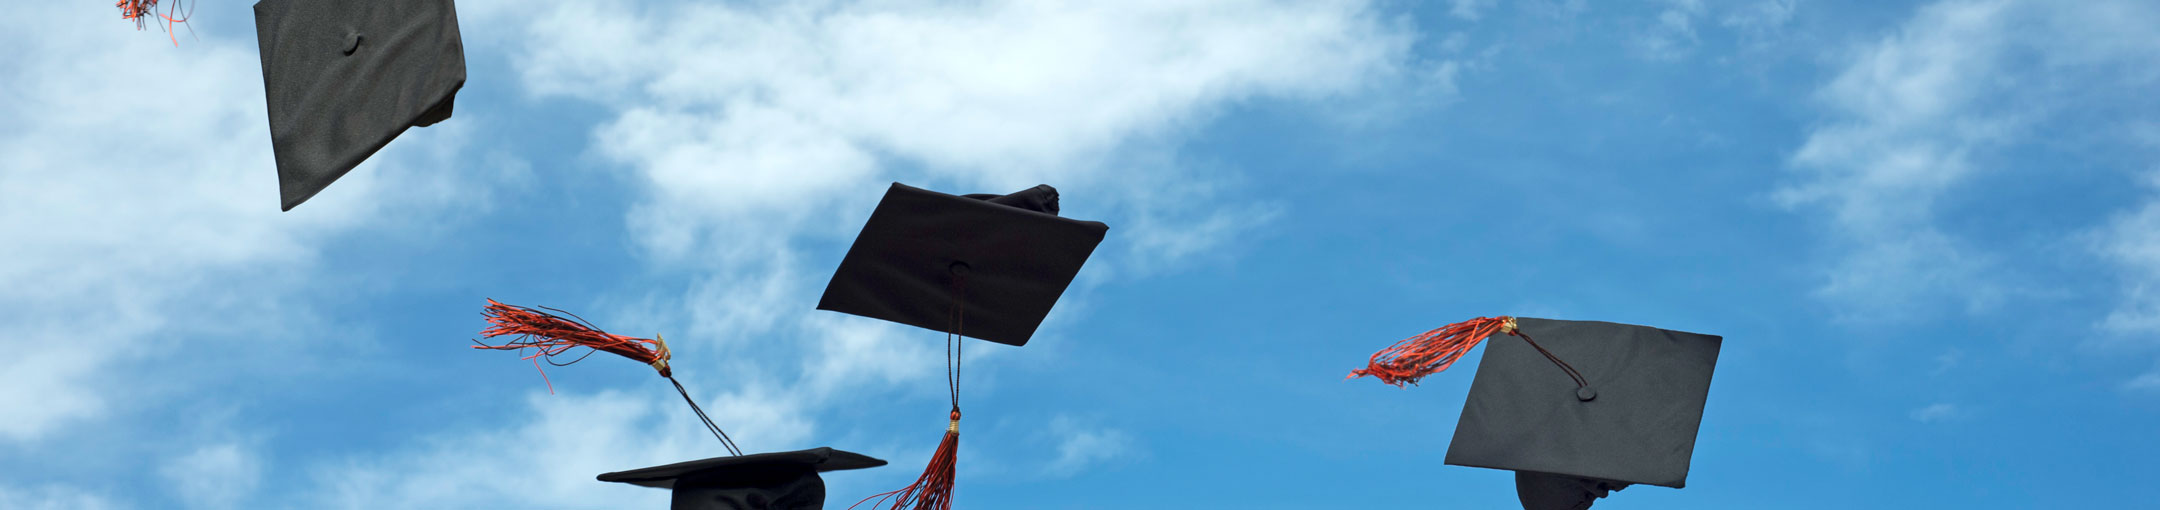 Graduation caps thrown in the air against a blue sky